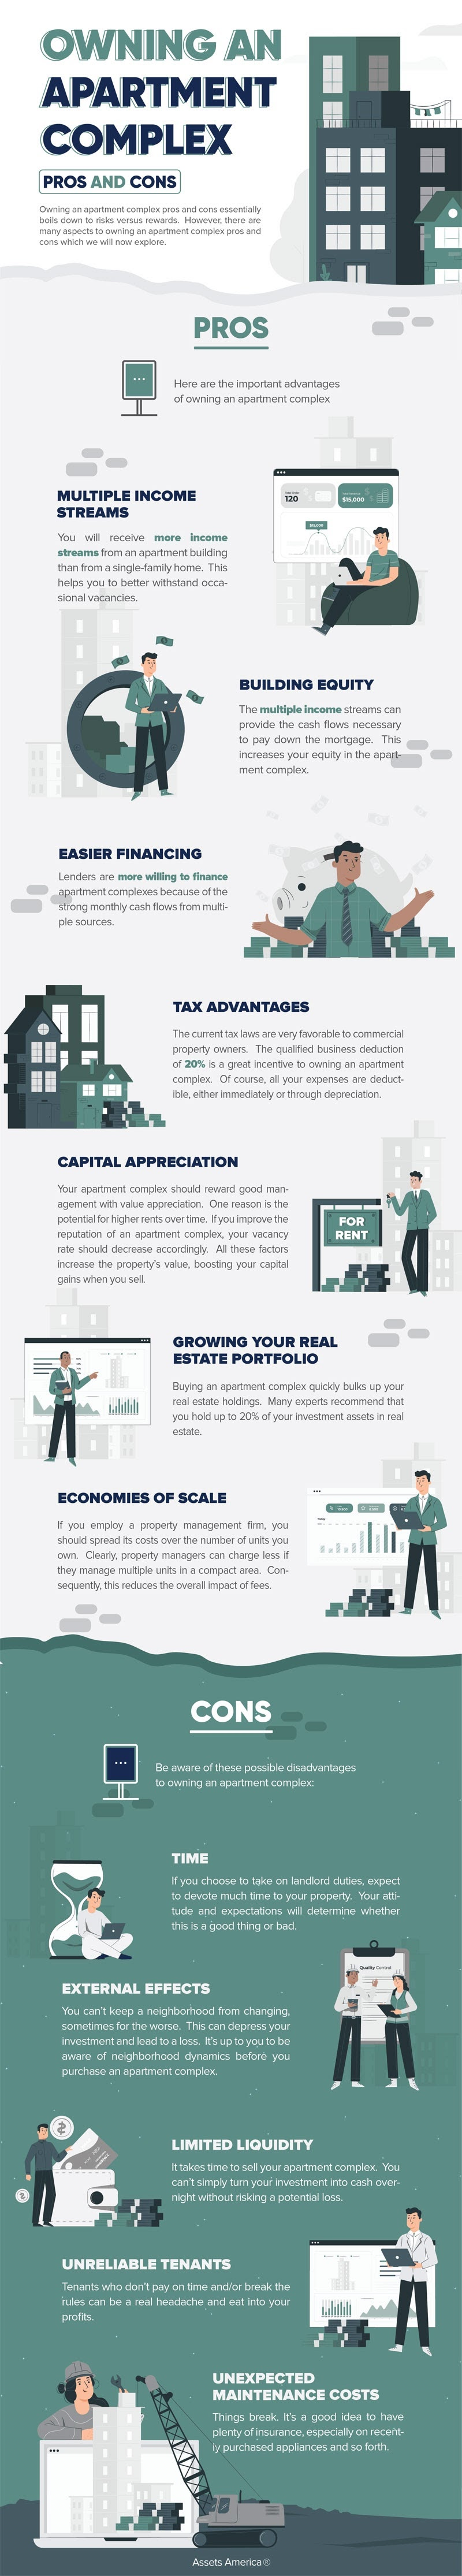 Owning an Apartment Complex – Profitability Pros & Cons #infographic #Home #Money